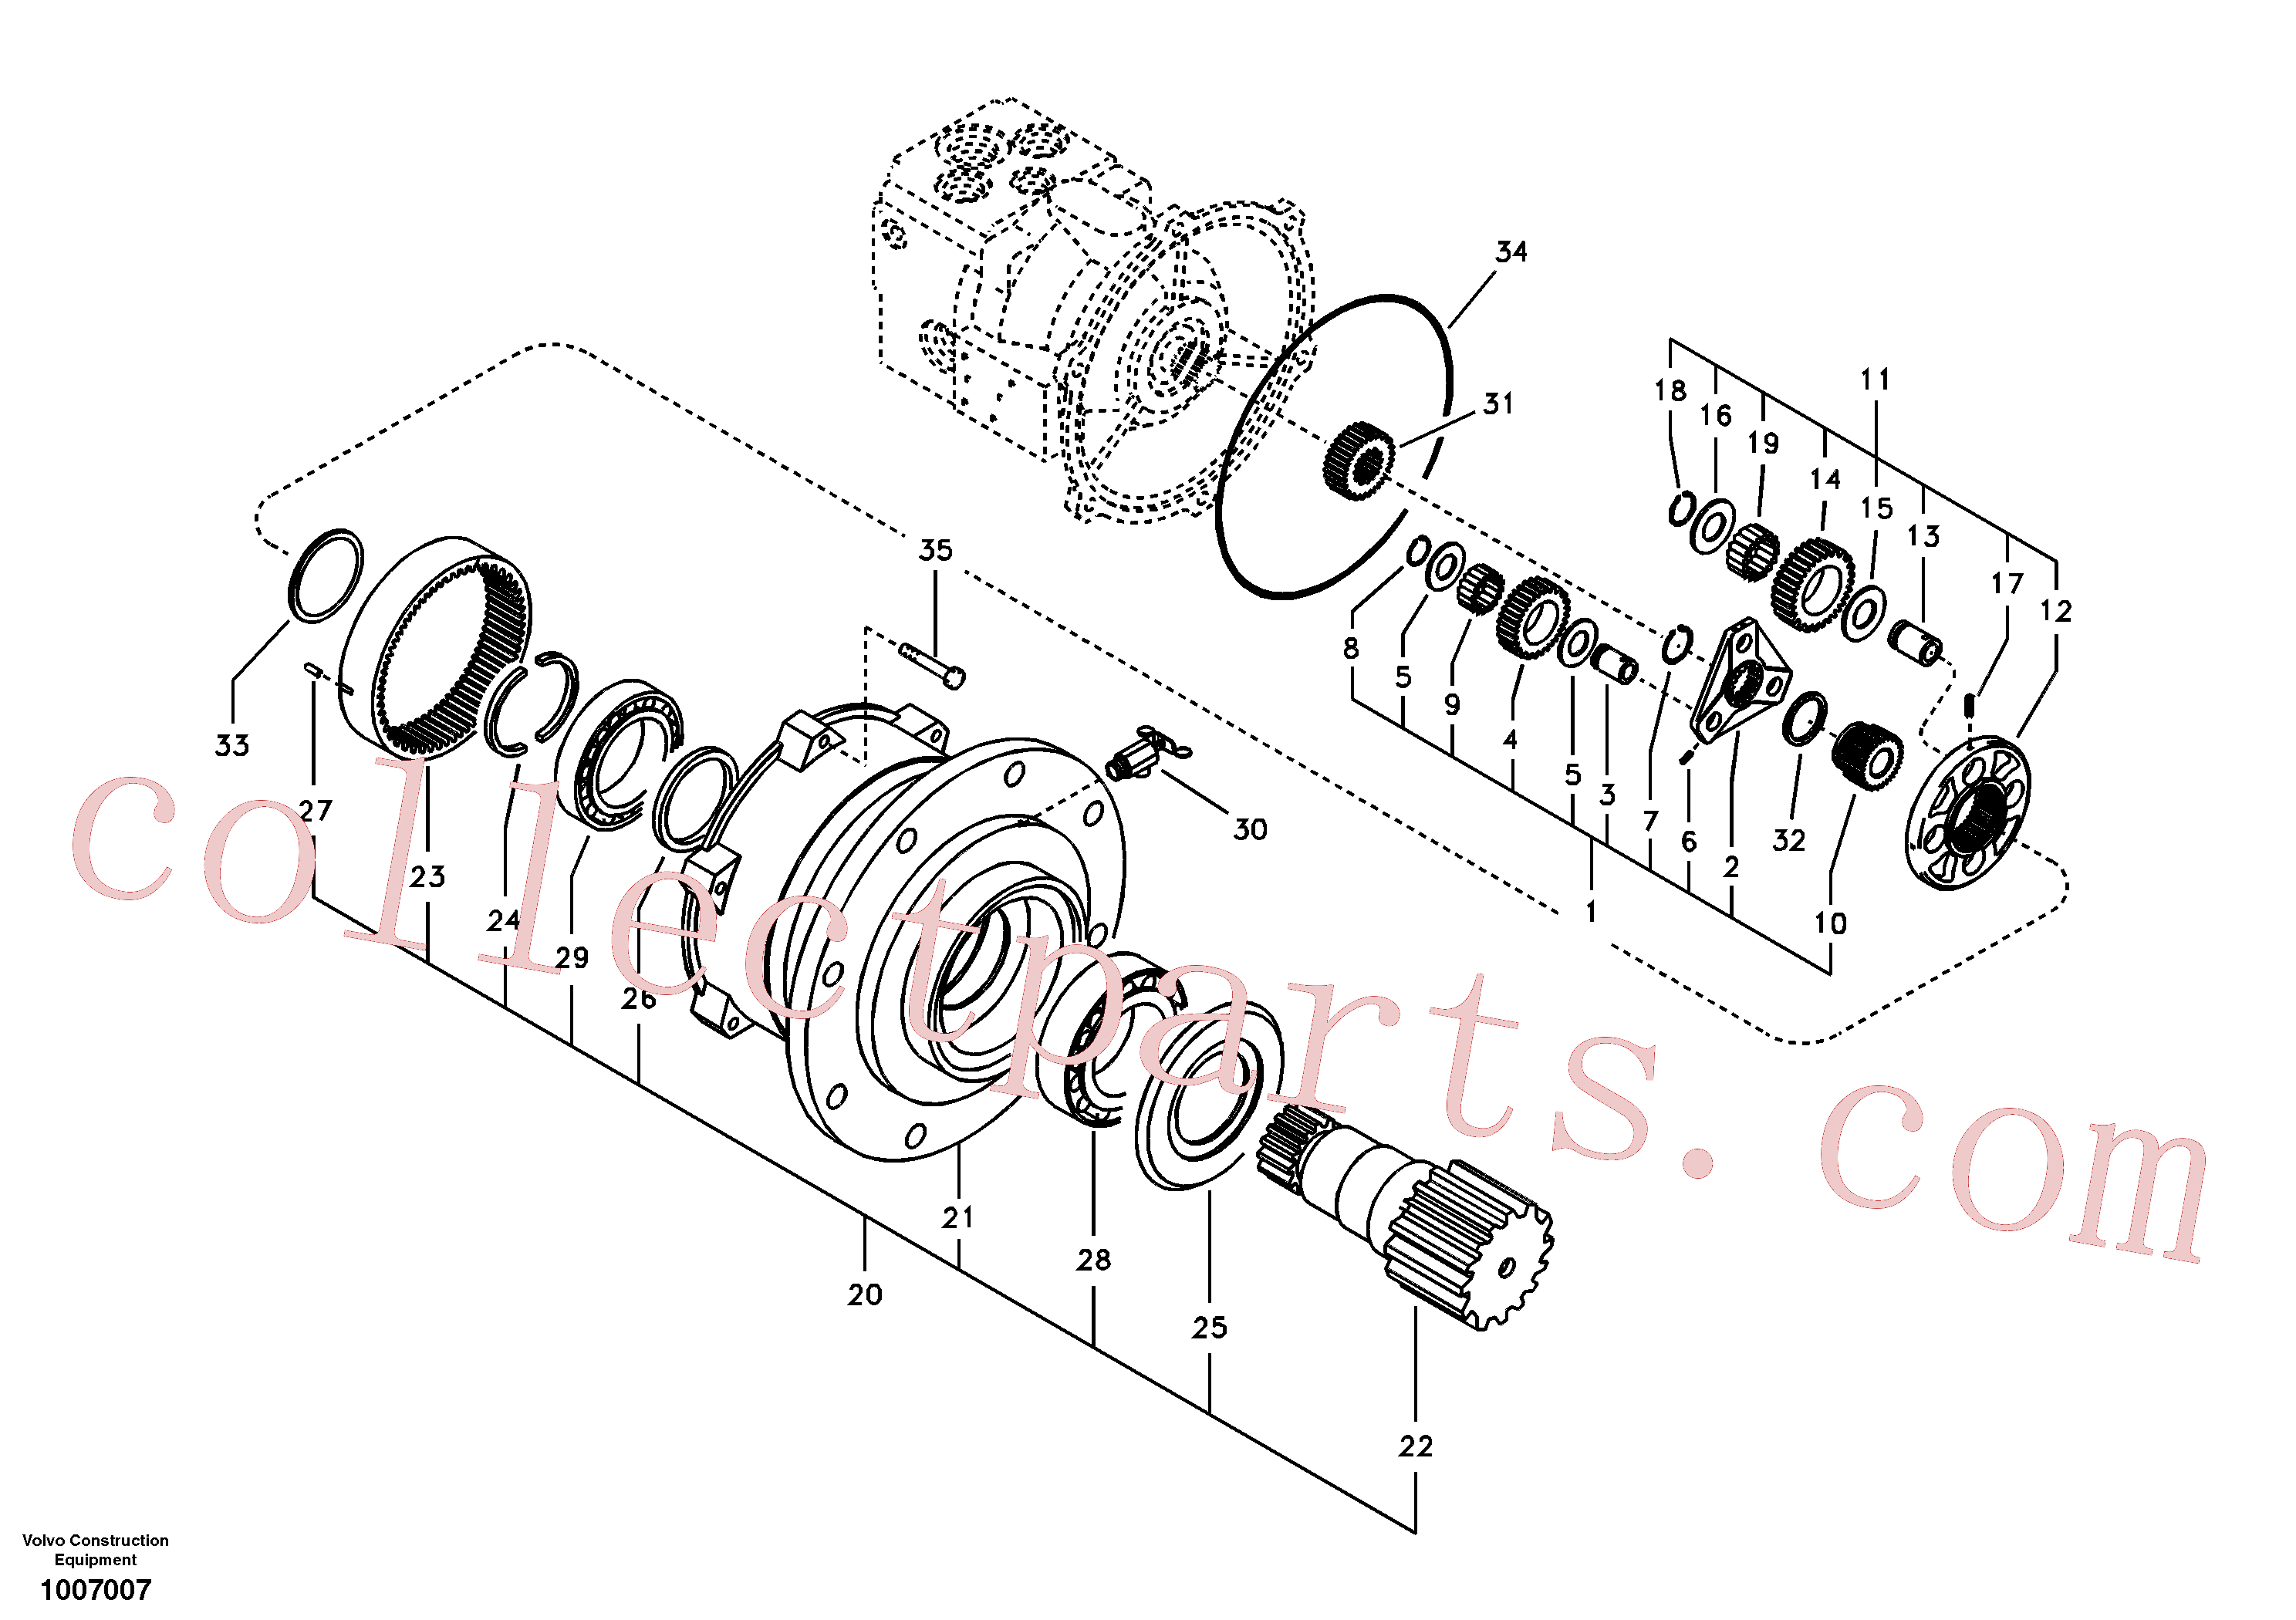 VOE14503940 for Volvo Swing gearbox(1007007 assembly)